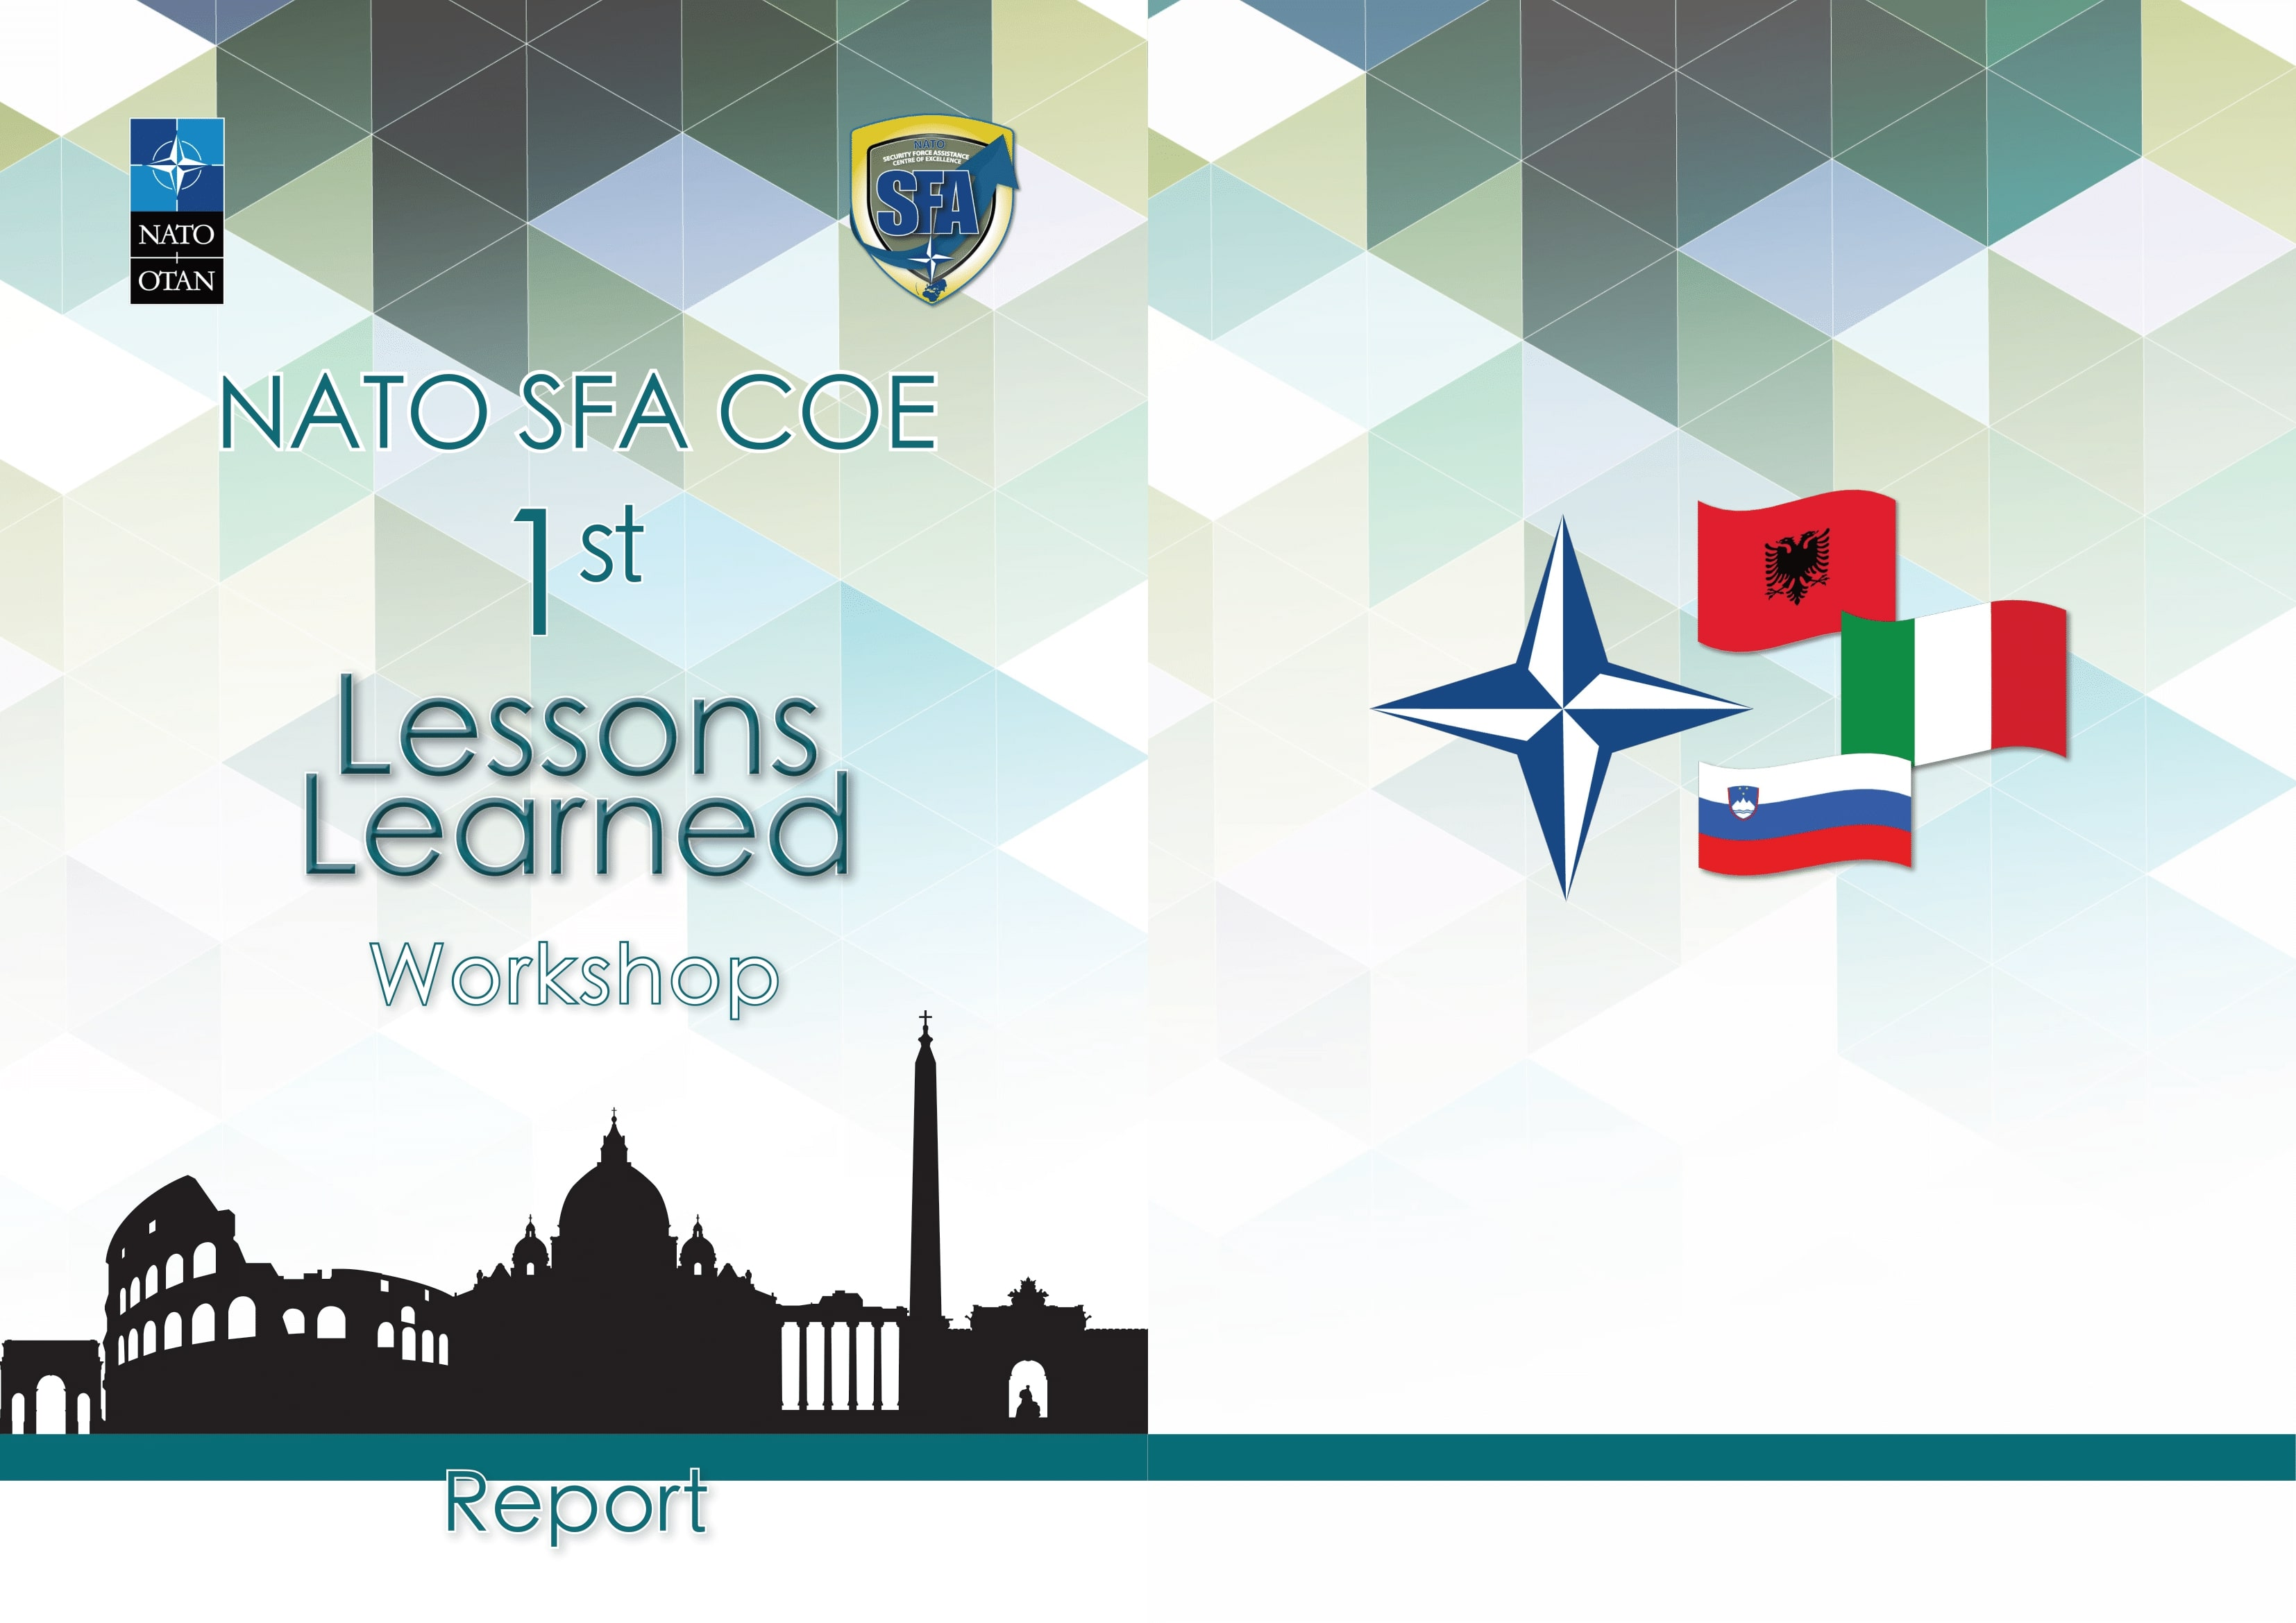 NATO SFA COE Lessons Learned Workshop report